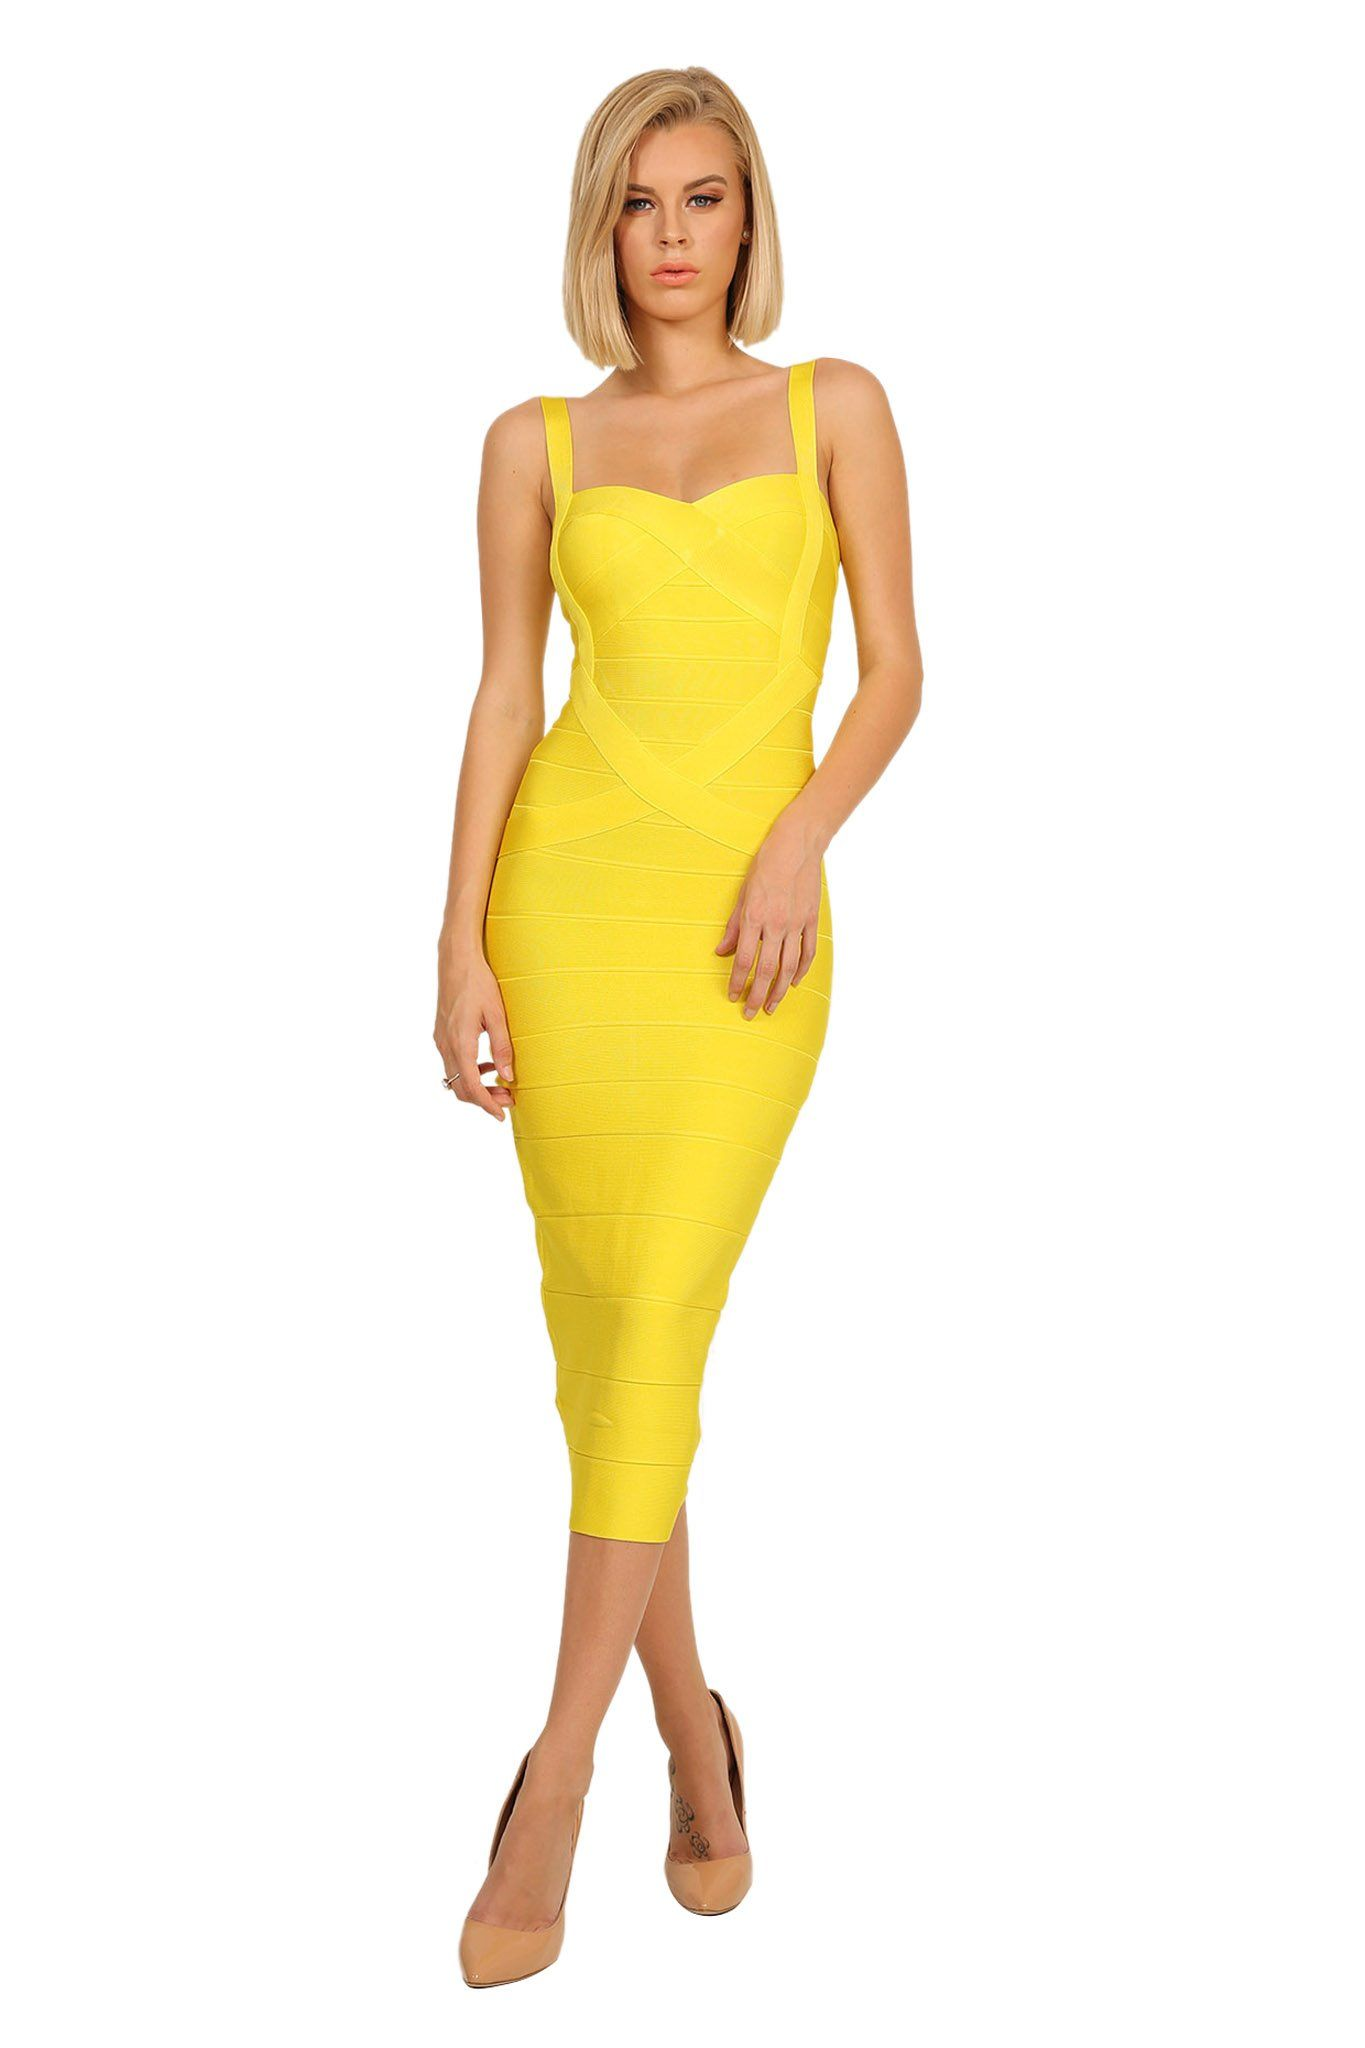 Front of midi below knee length bodycon bandage dress with thick shoulder straps in yellow color